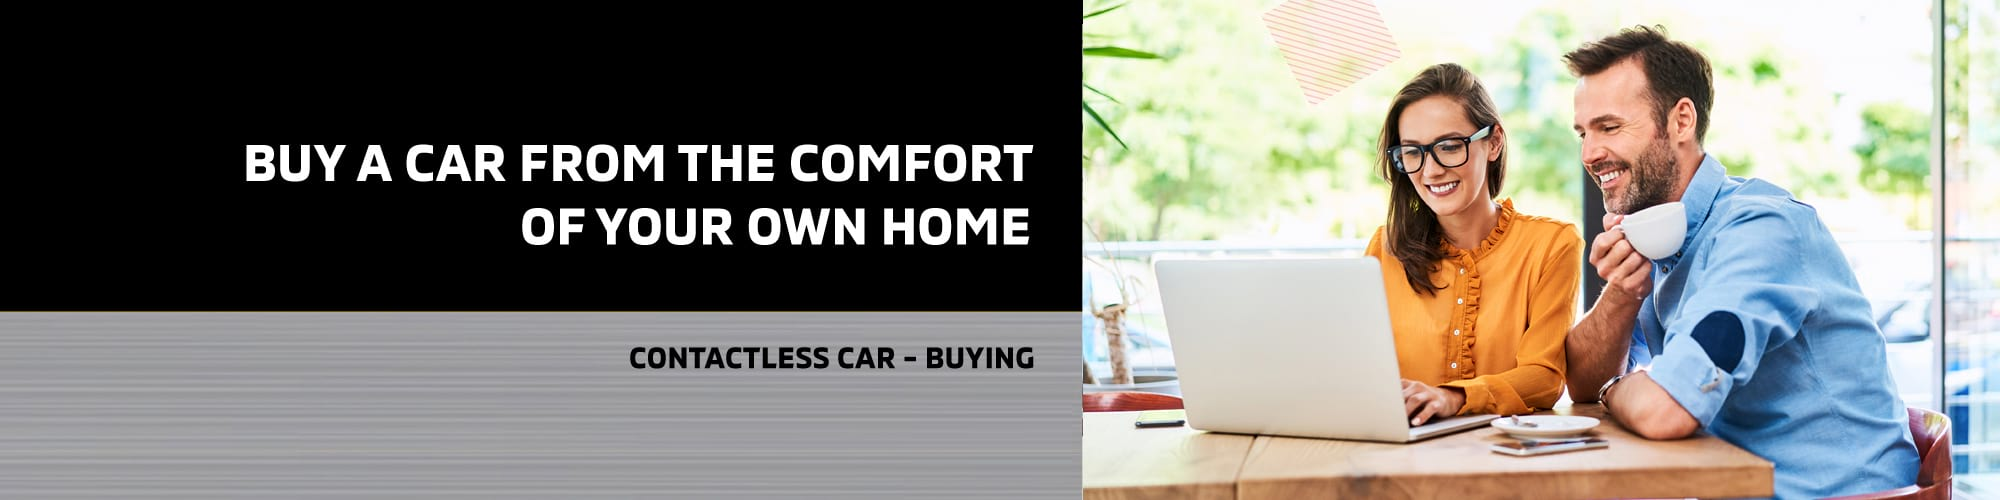 Buy a car from the comfort of your own home